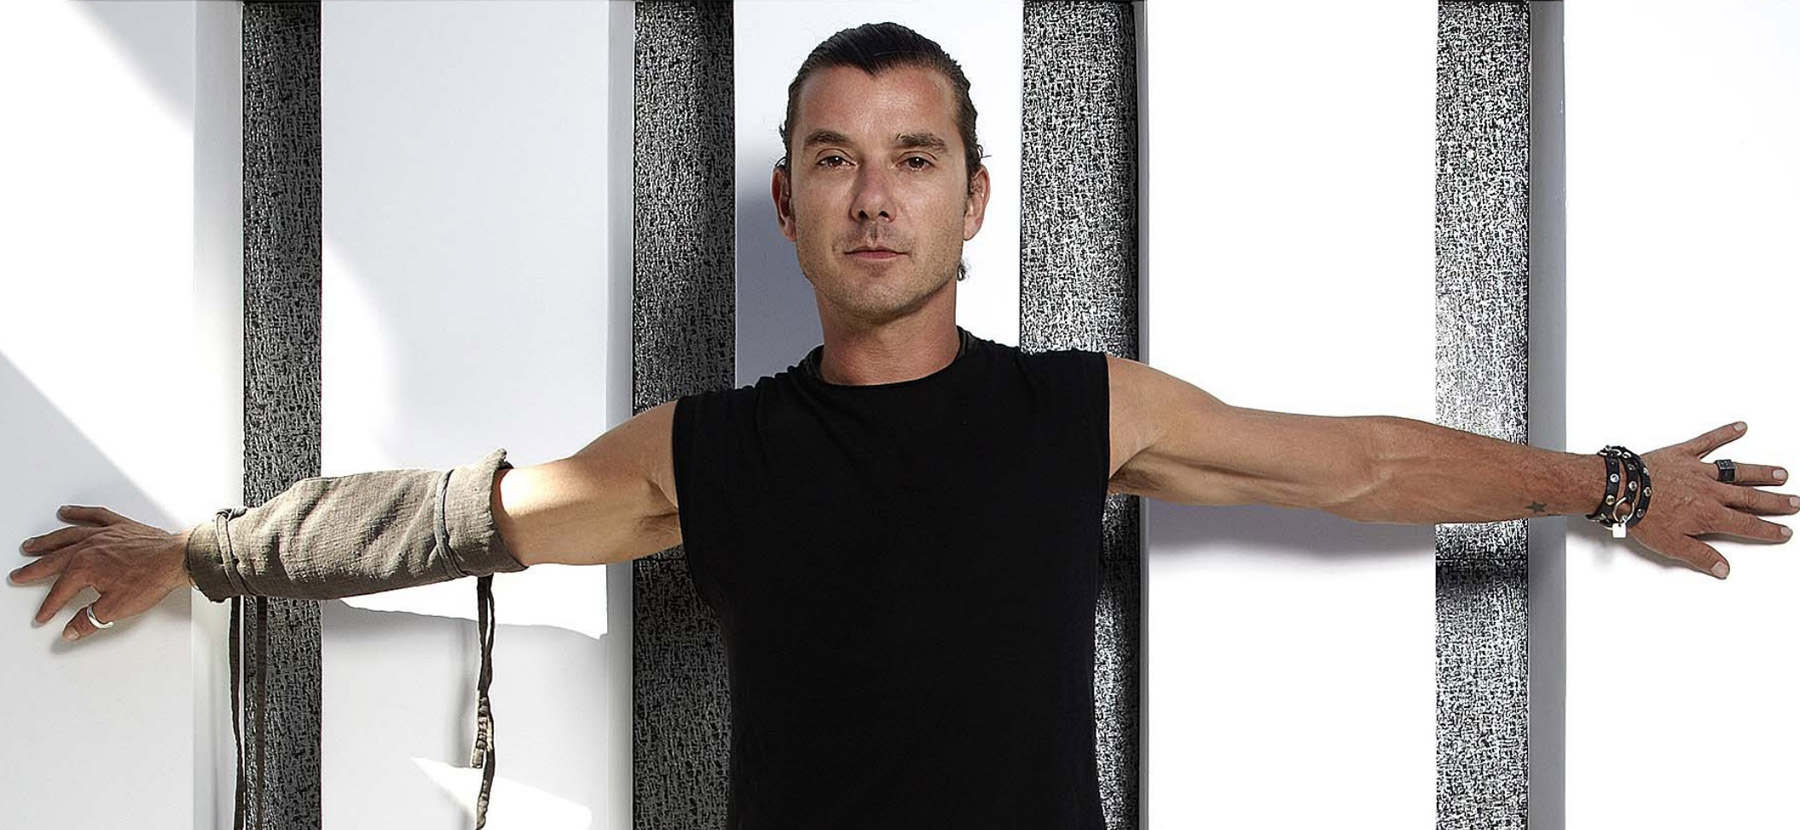 Gavin Rossdale, copyright Astor Morgan